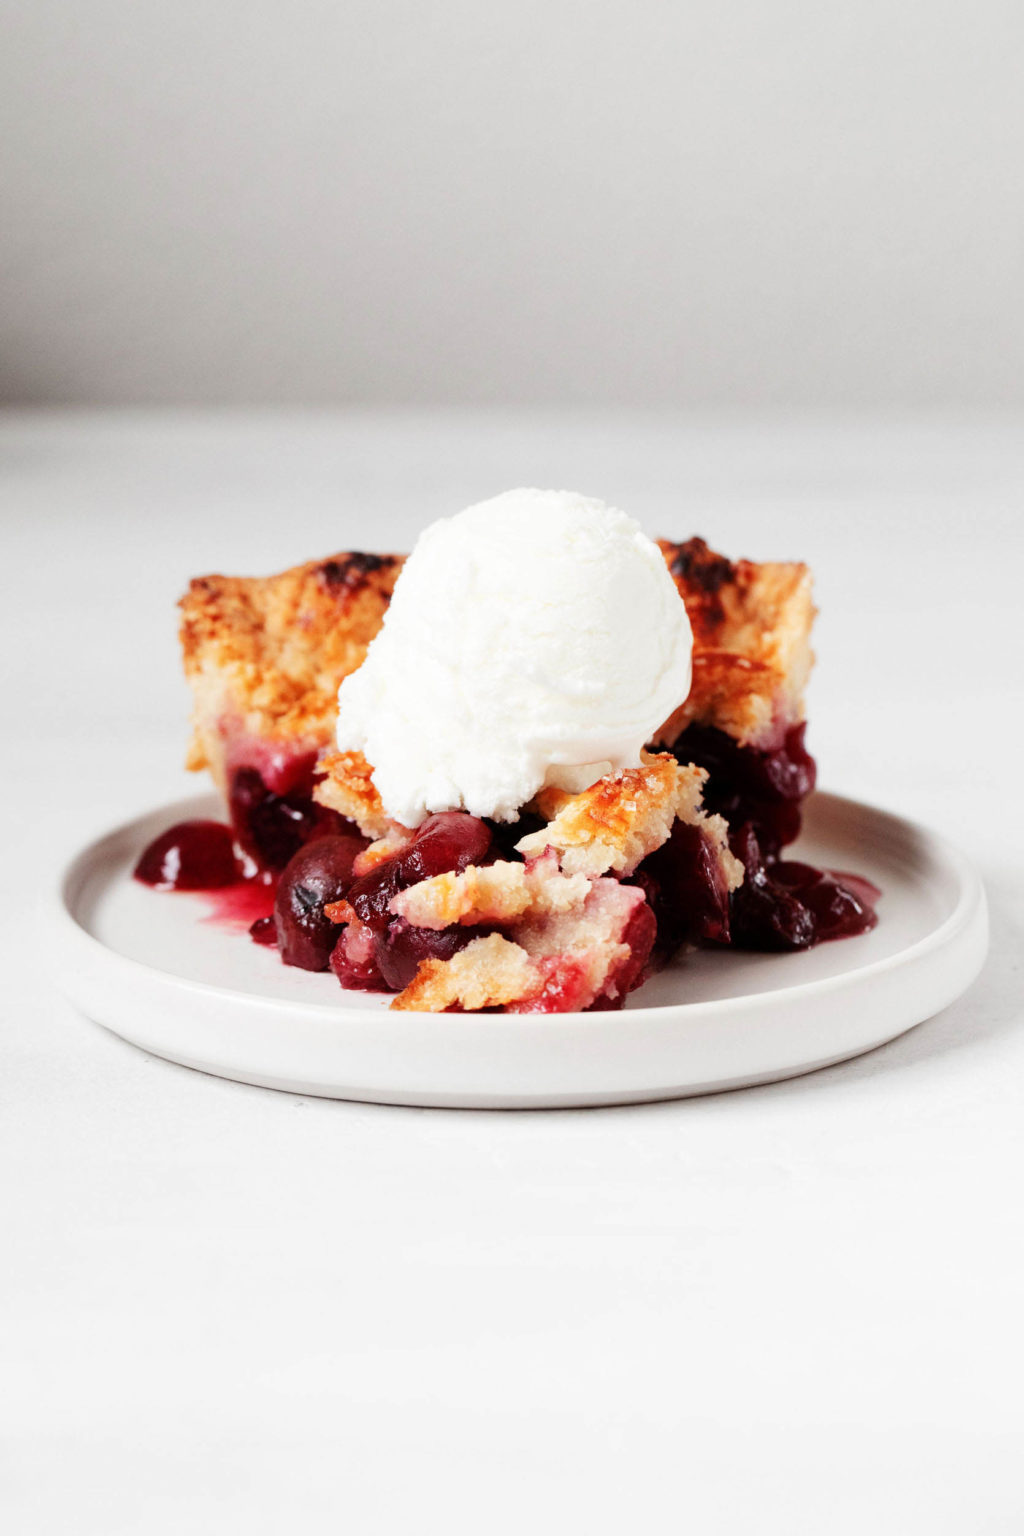 A slice of rustic, fruit dessert rests on a small, round white dessert plate. The flaky dessert is topped with a white scoop of vanilla ice cream.